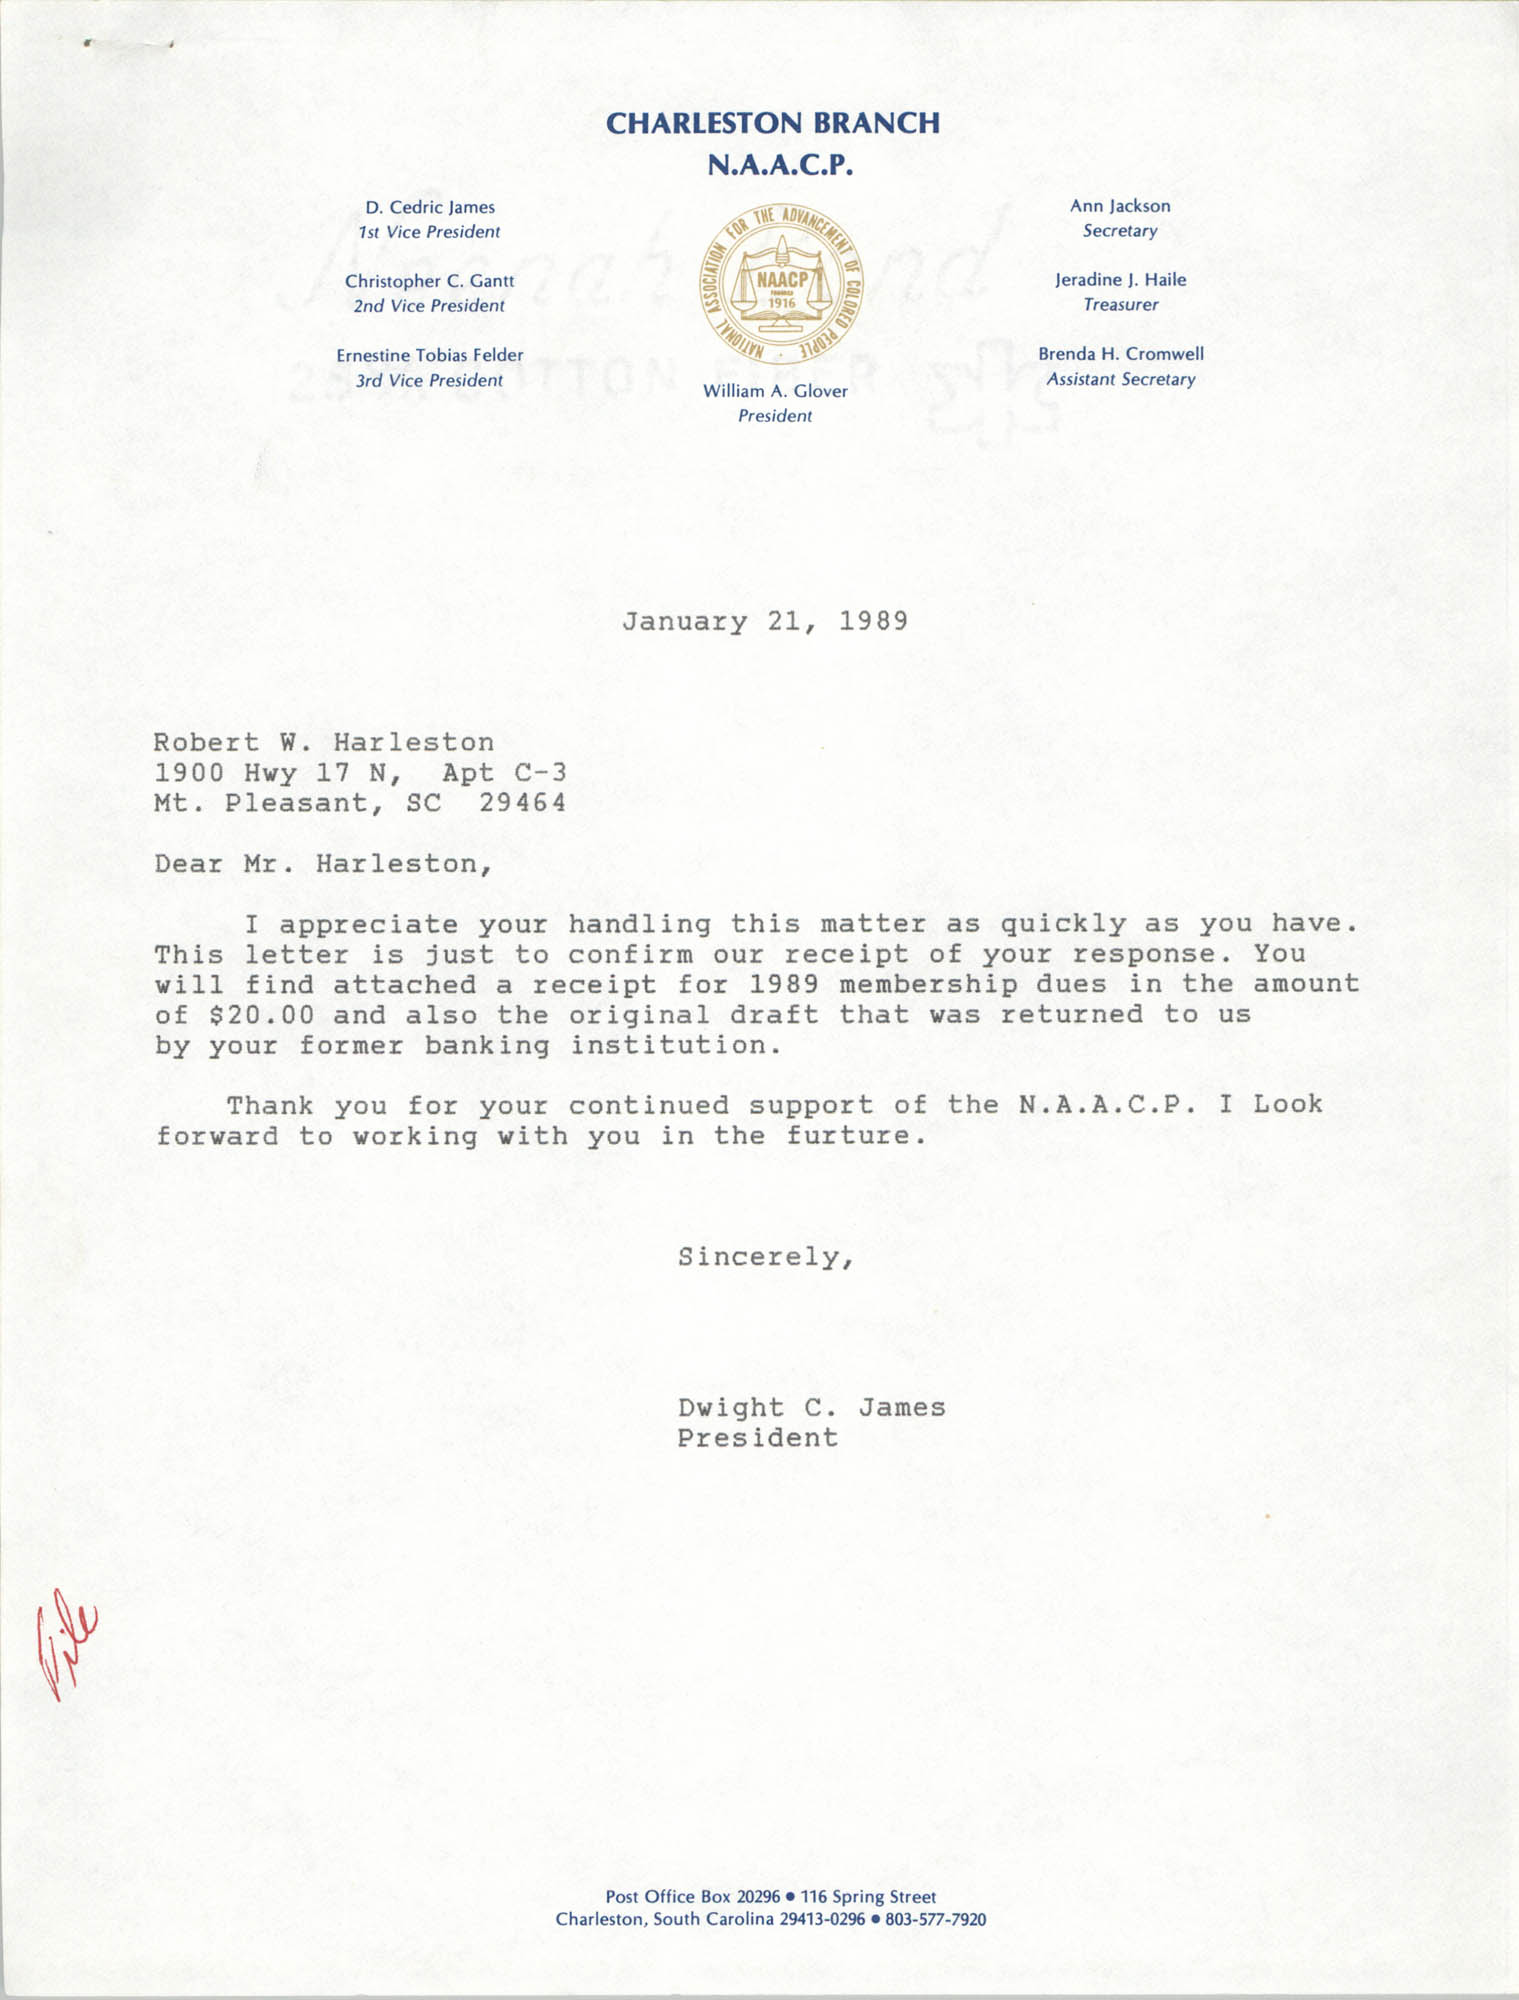 Letter from Dwight C. James to Robert W. Harleston, January 21, 1989